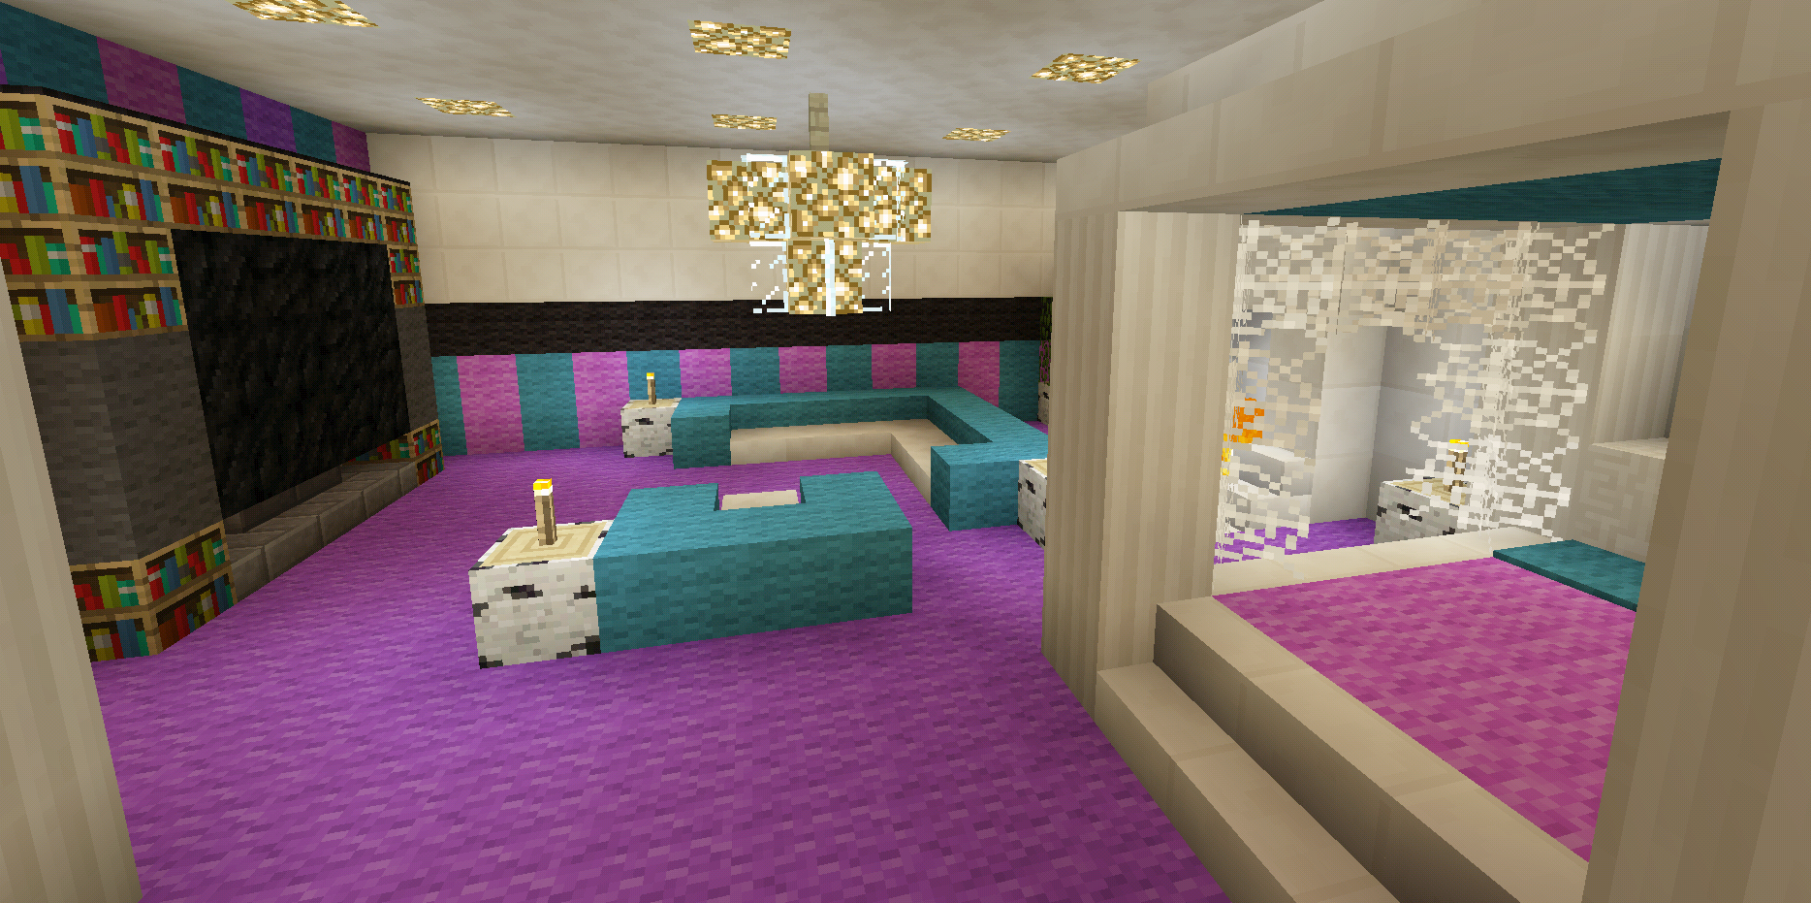 Minecraft Bedroom Pink Girl Purple Wallpaper Wall Design Canopy ...